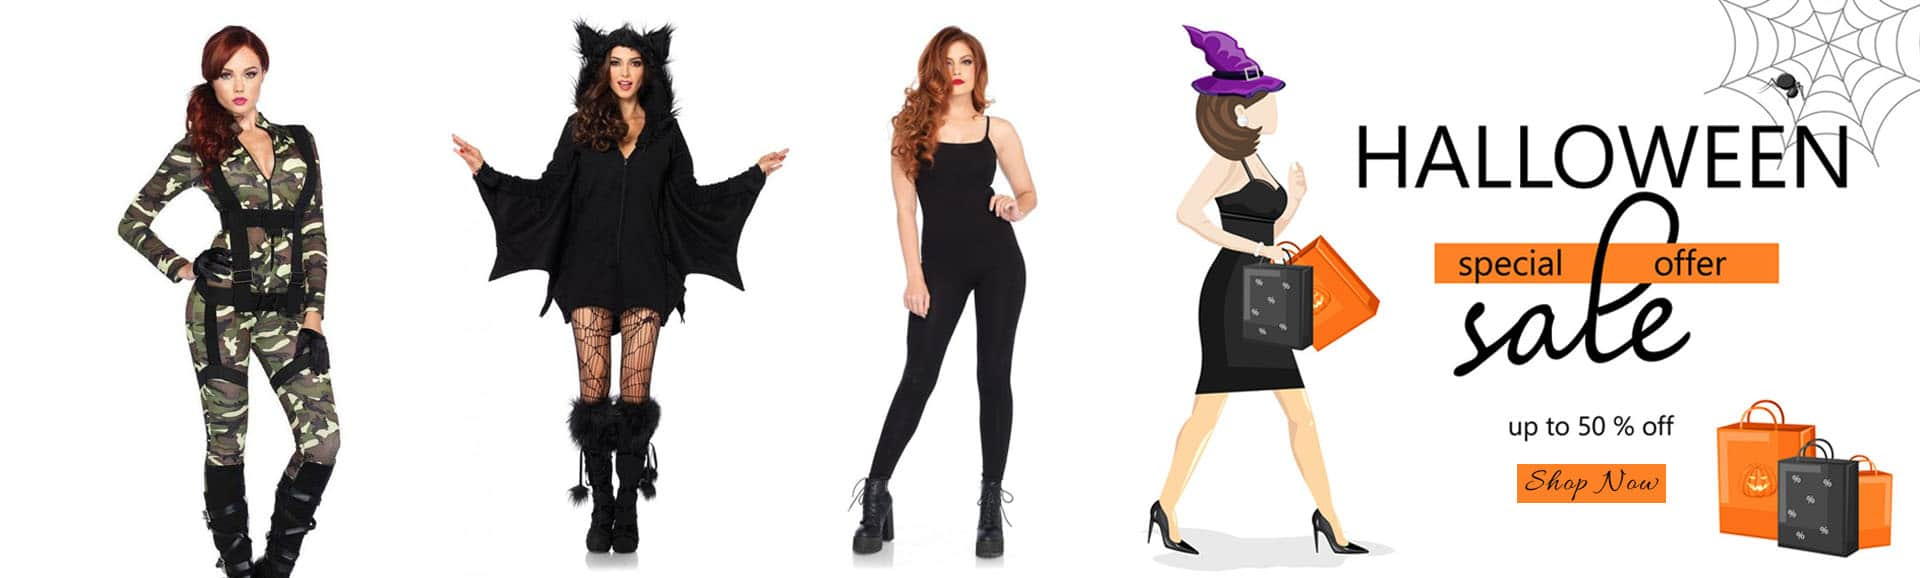 Halloween Wholesalers Shop Online Halloween Costumes Up To 50 Off